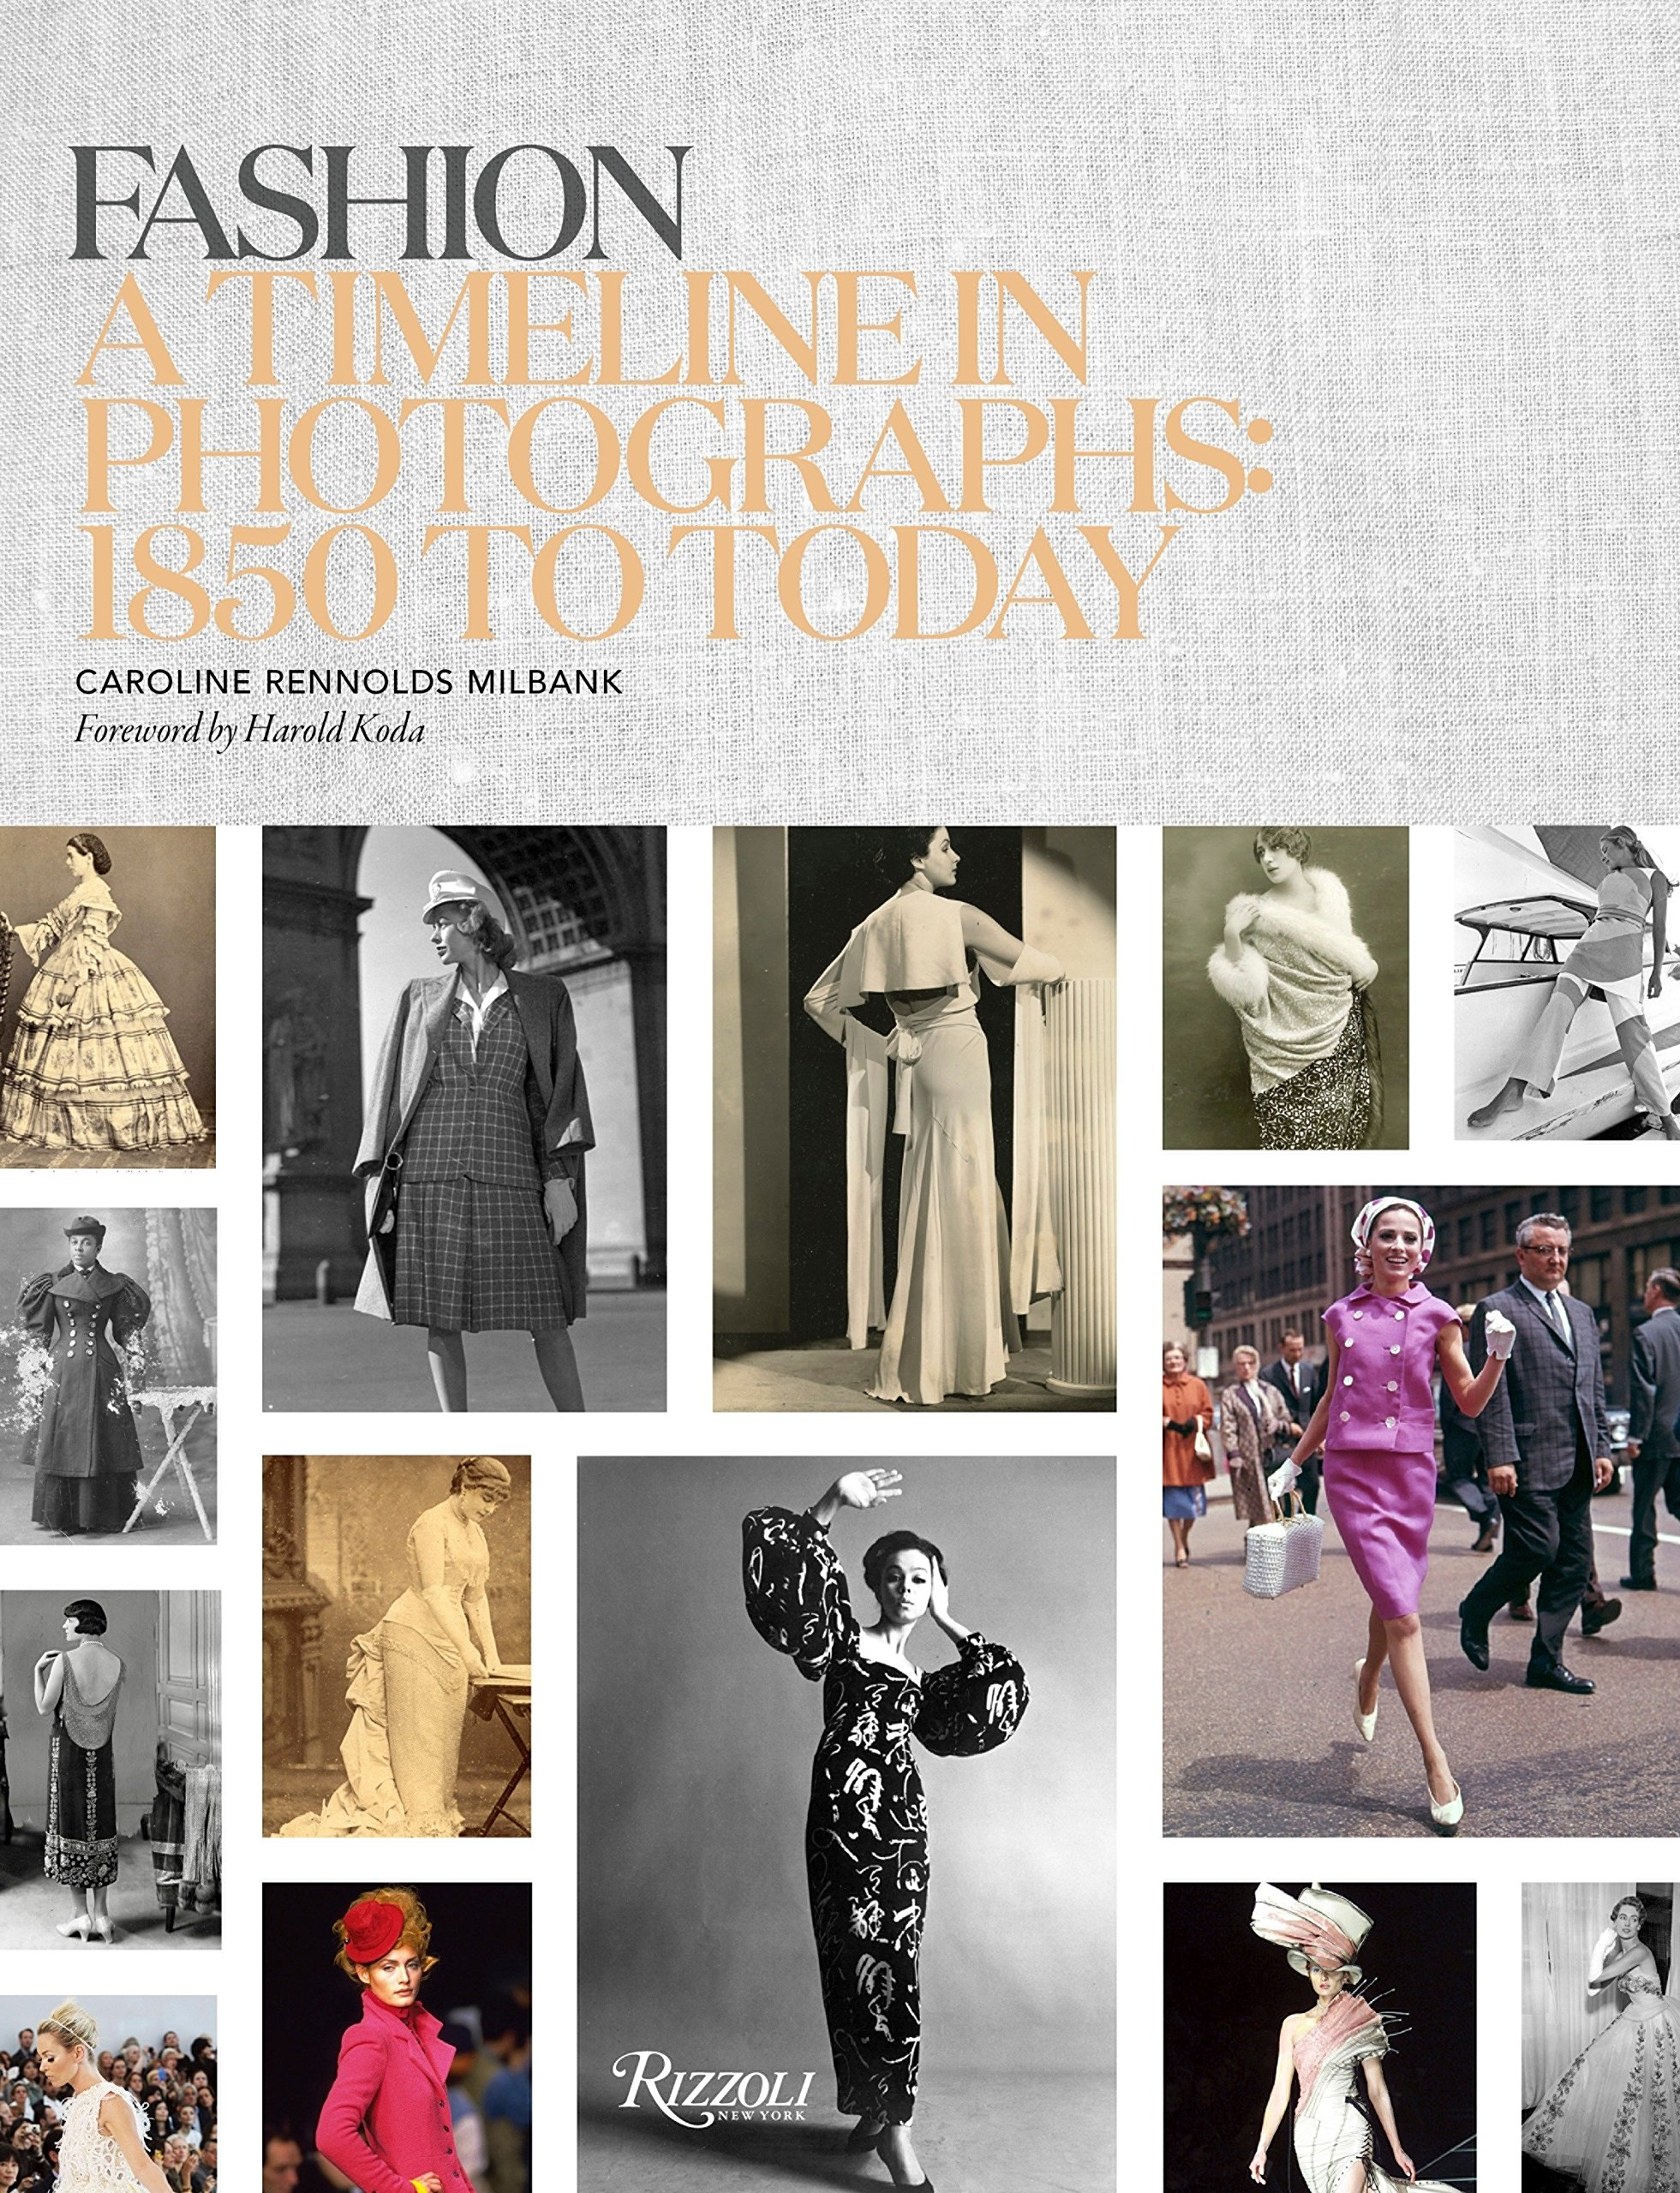 Fashion A Timeline In Photographs 1850 To Today Rennolds Milbank Caroline Koda Harold 9780847846023 Amazon Com Books